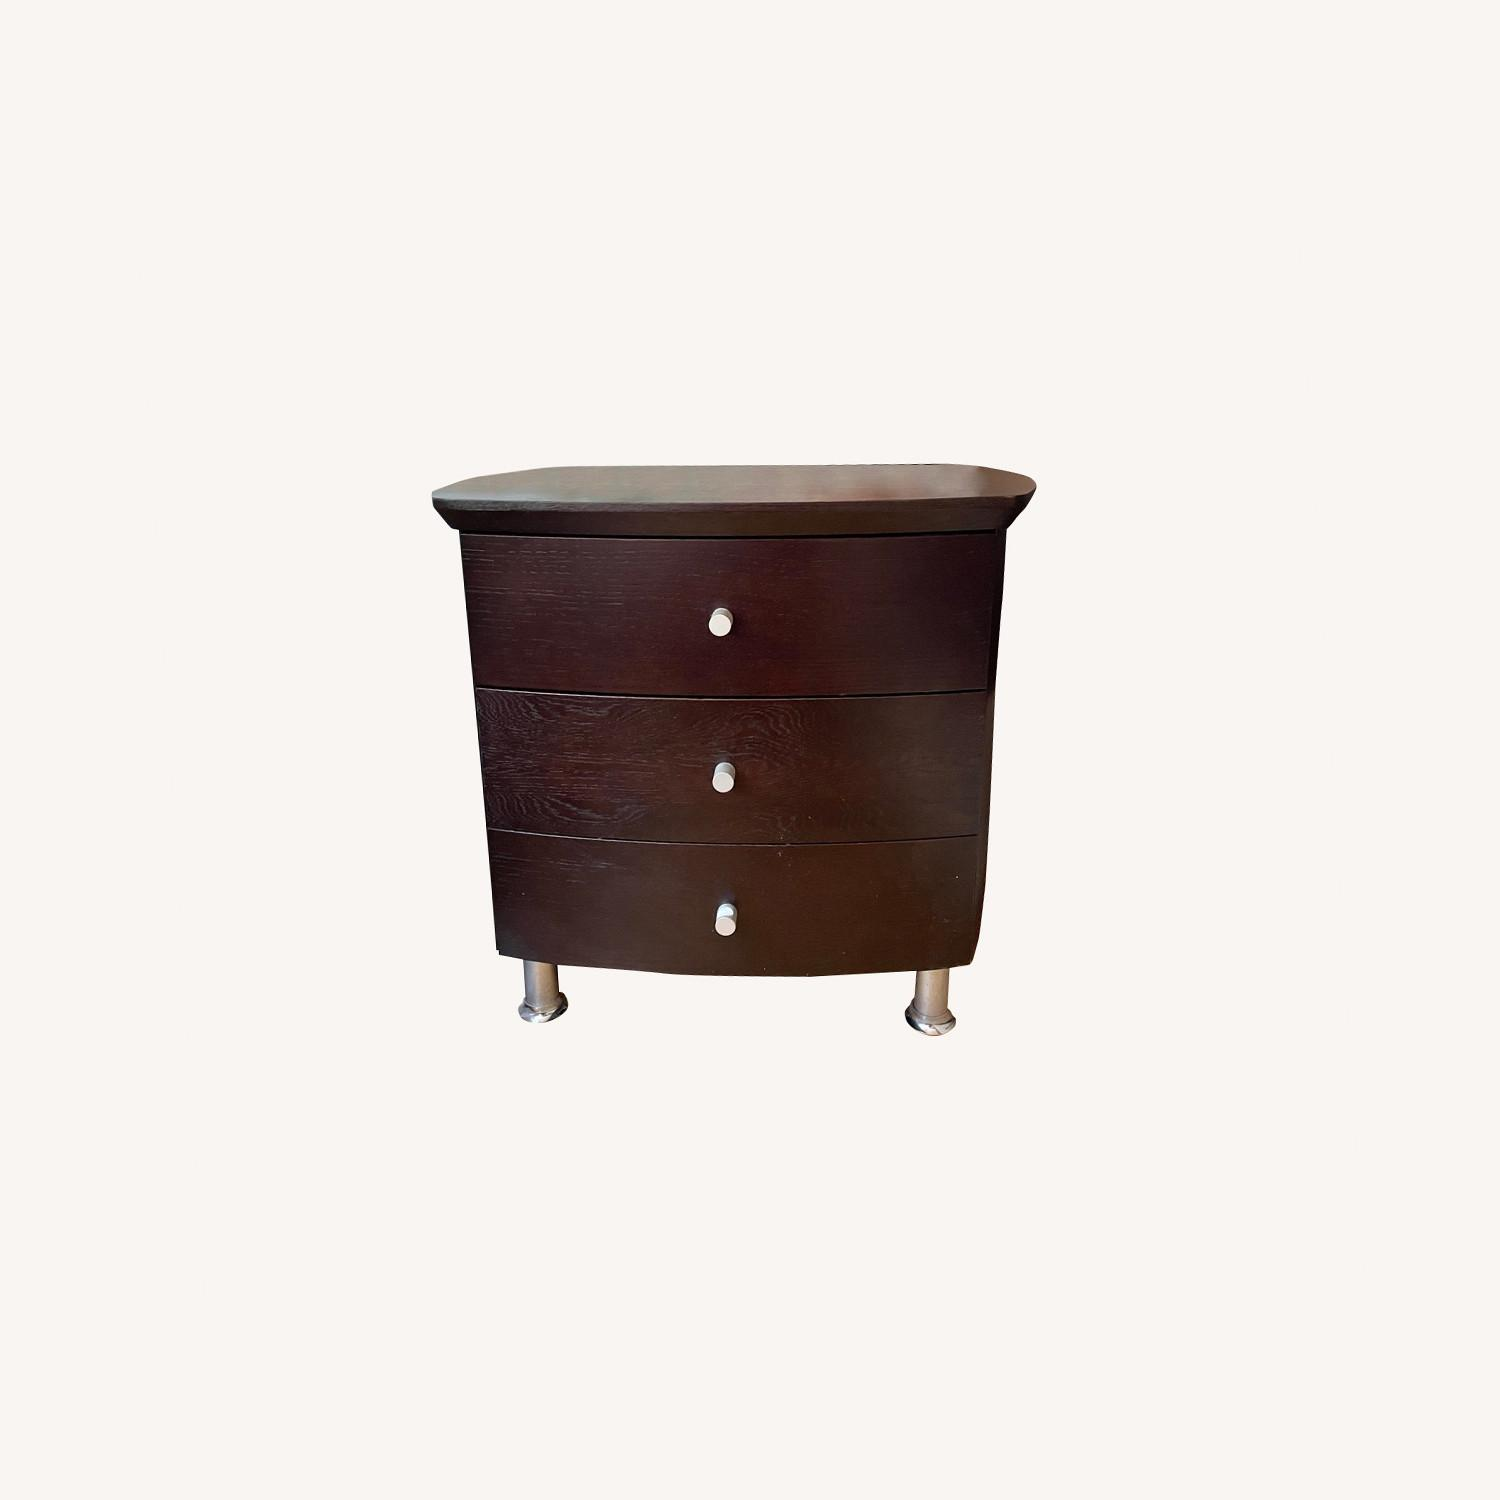 ByDesign 3-Drawer Nightstand with Chrome Legs - image-0